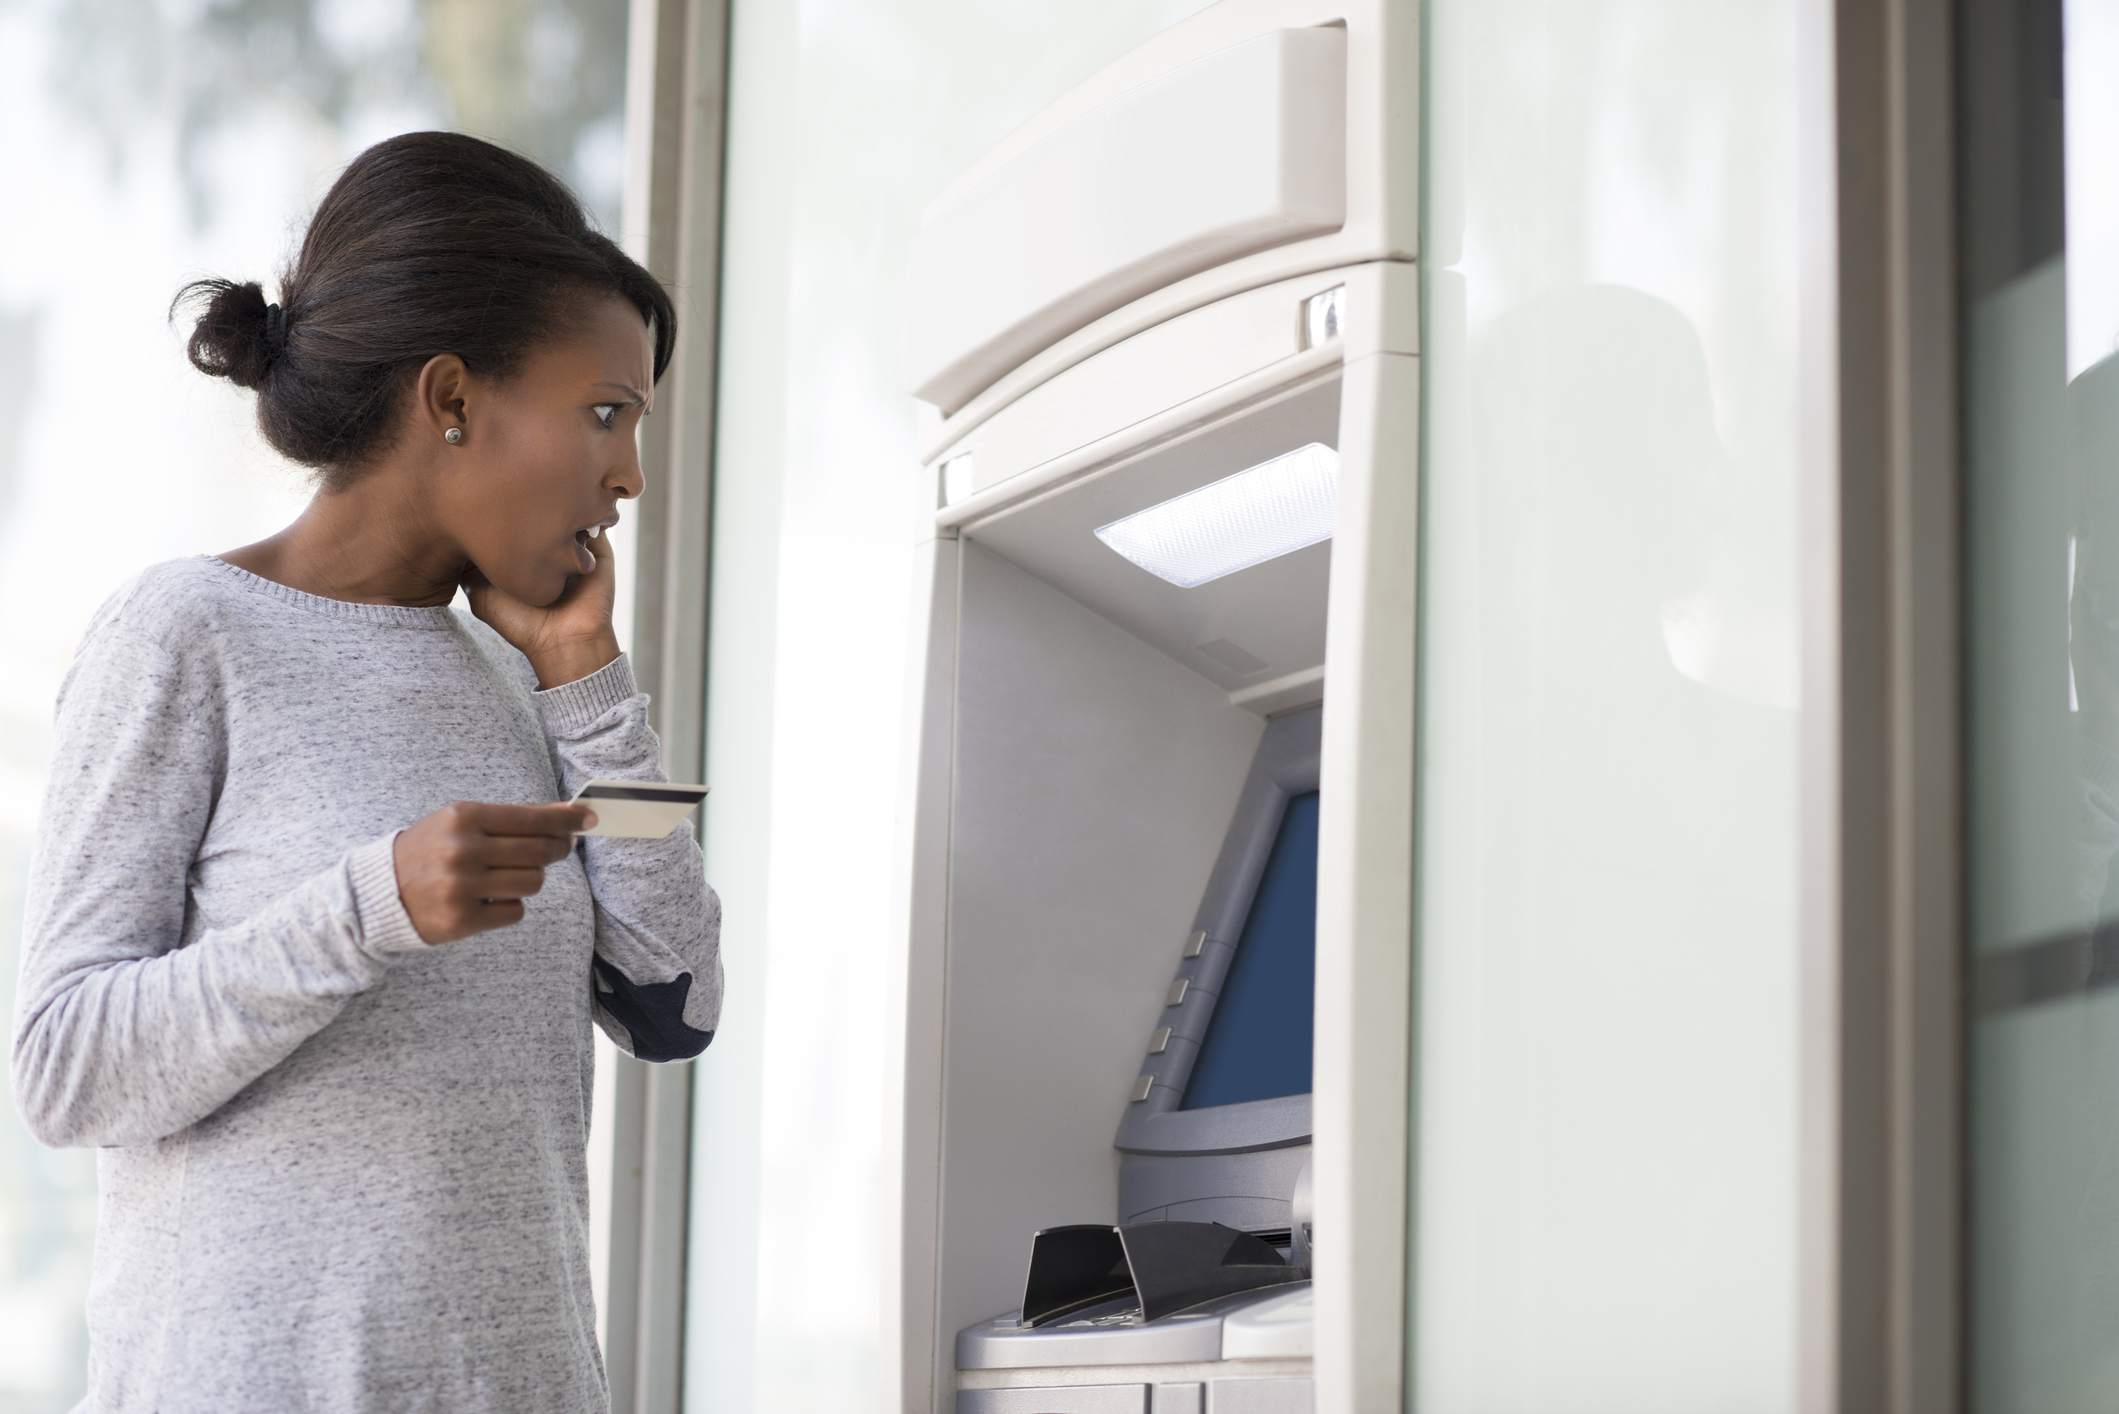 A young woman with a shocked facial expression looking at the ATM